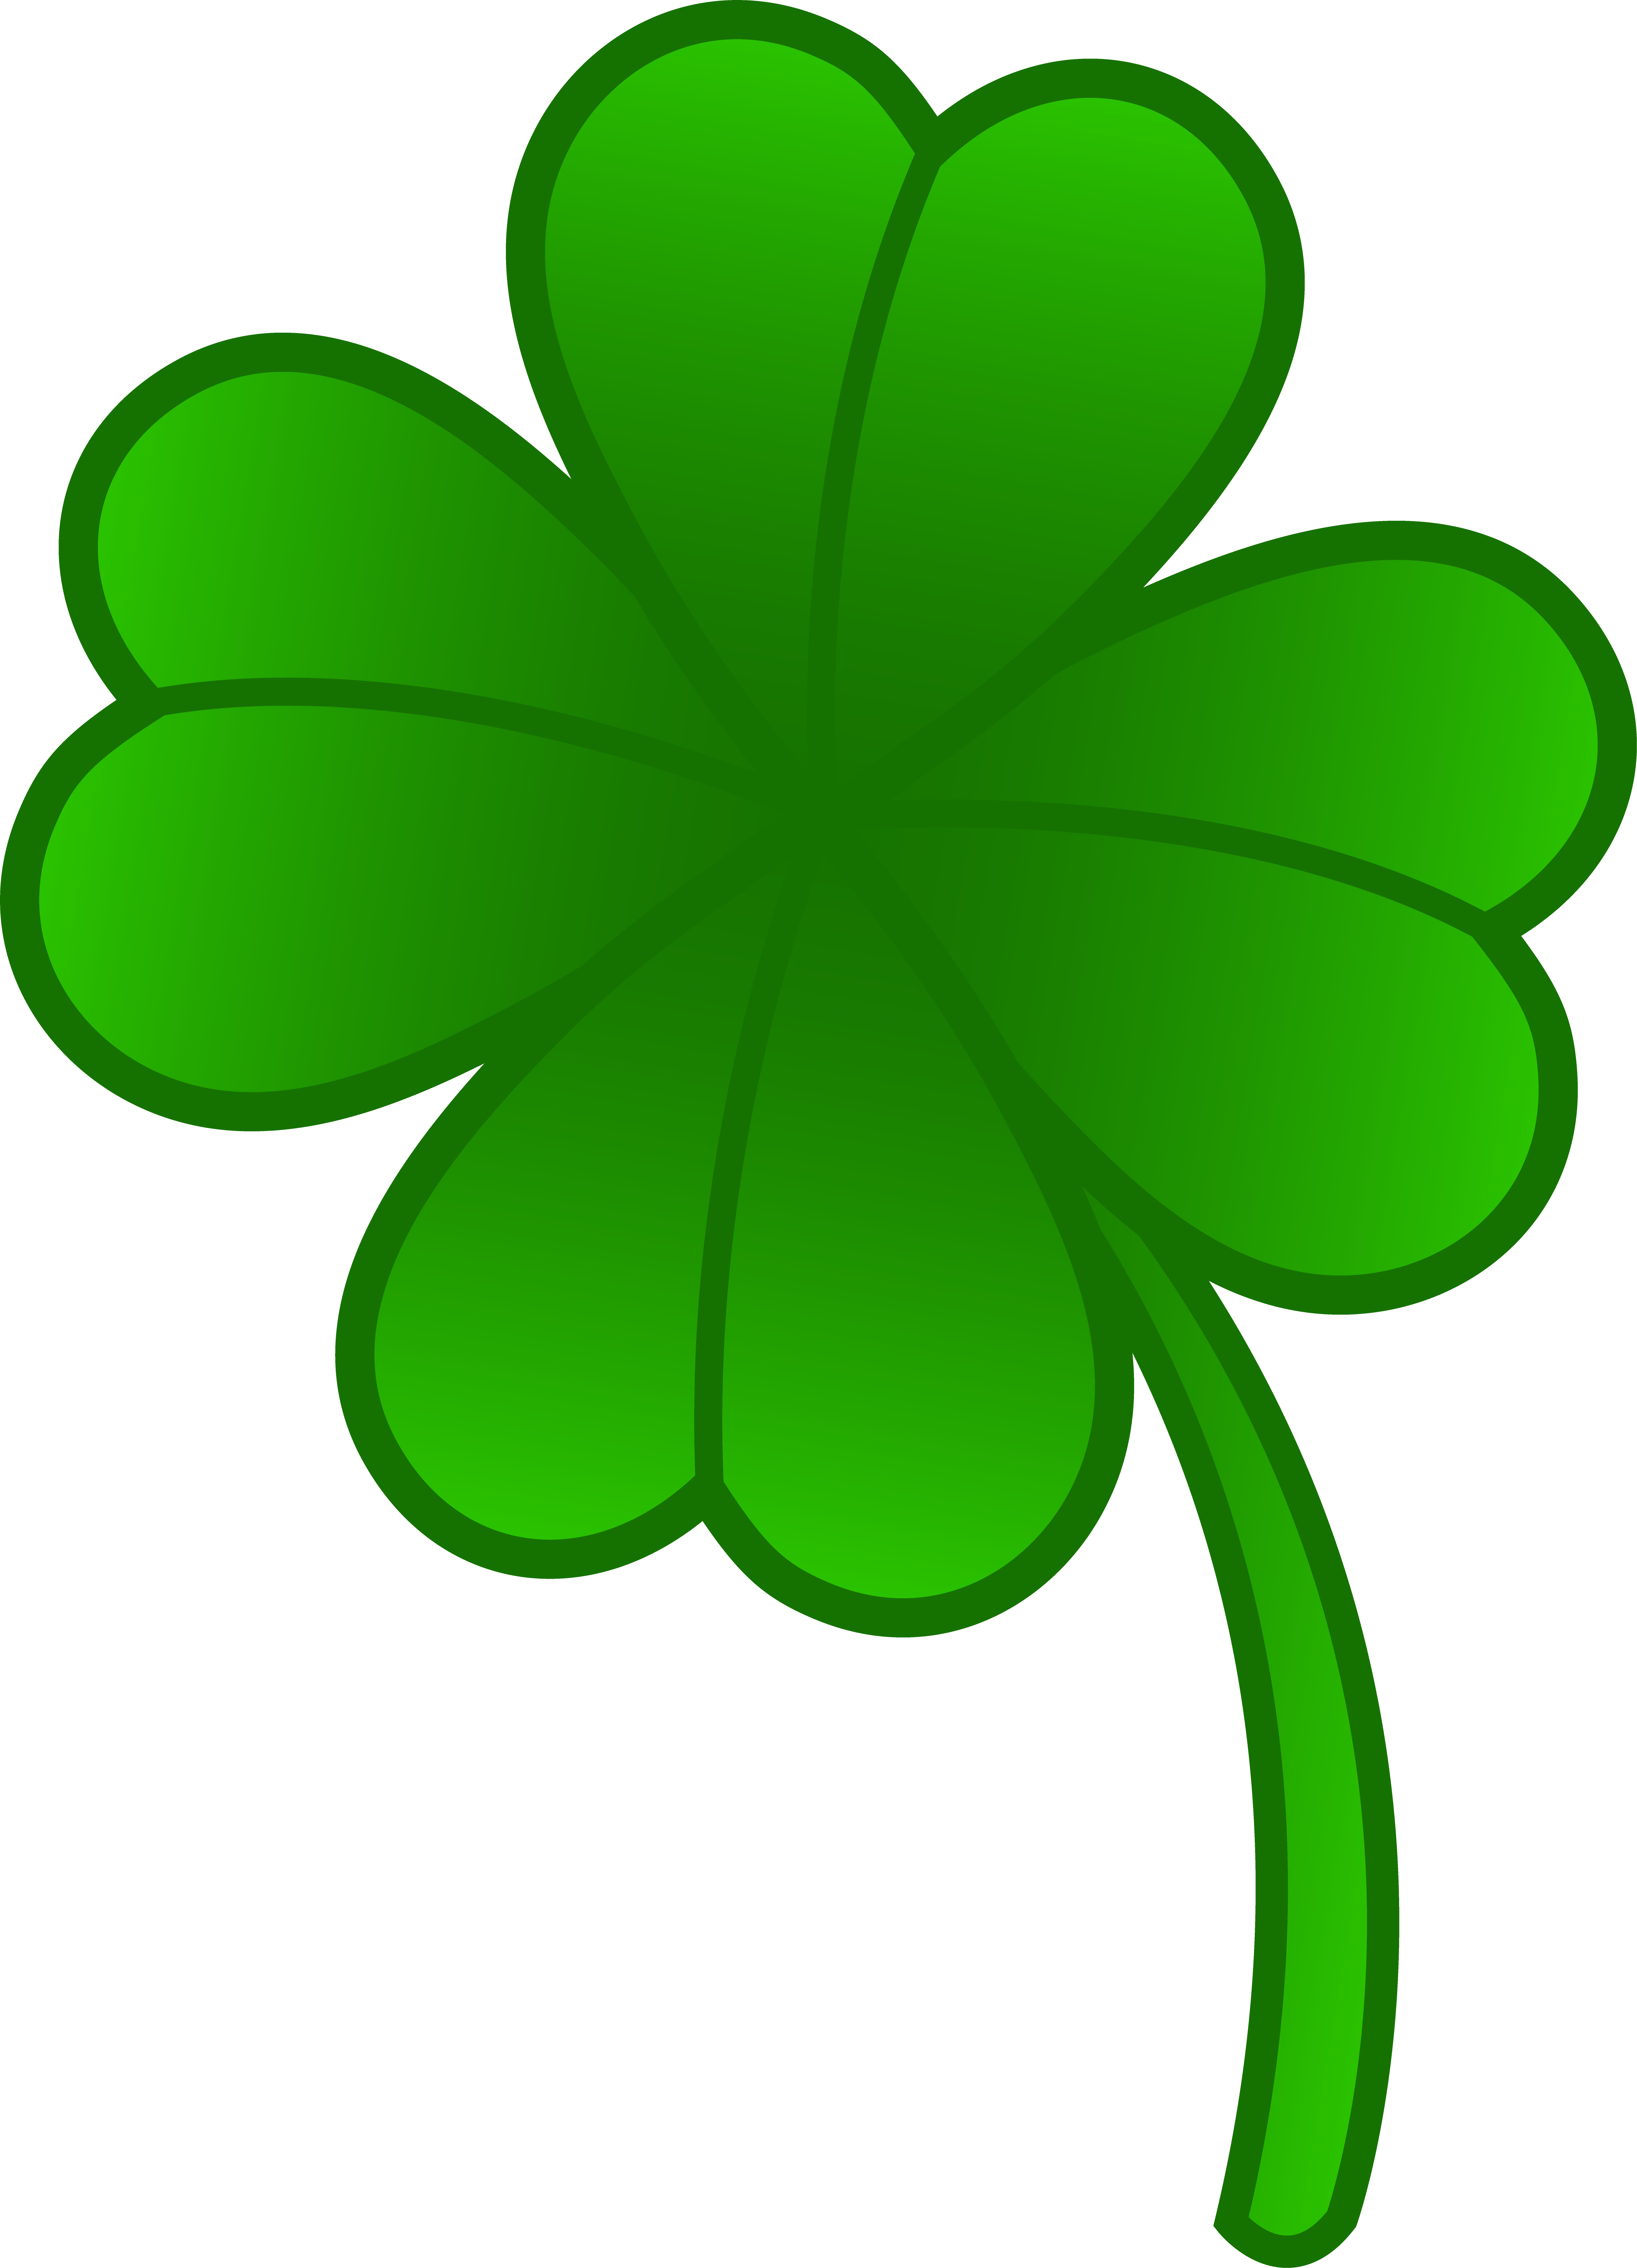 Clover clipart #2, Download drawings